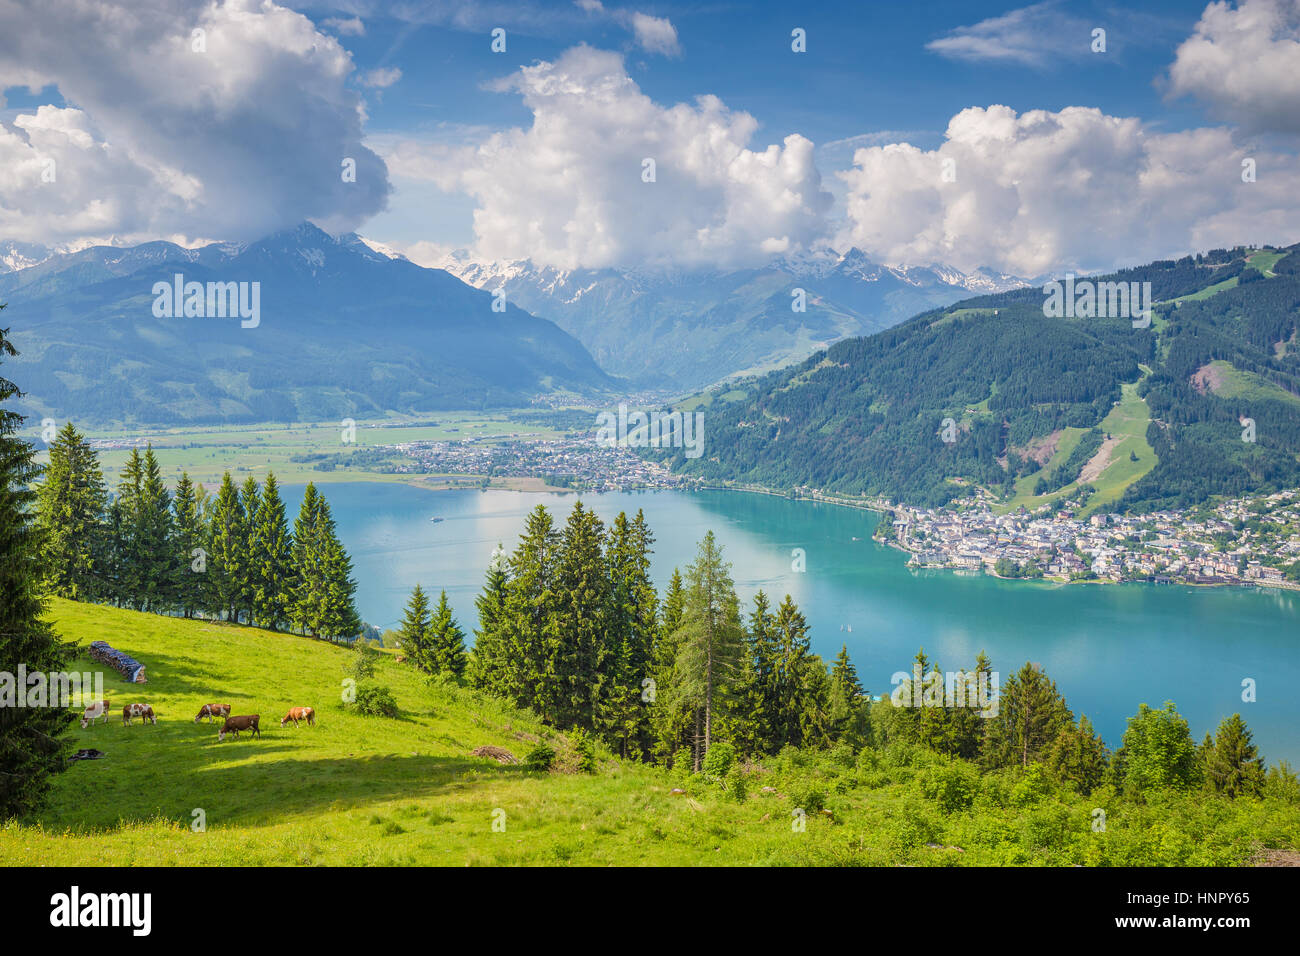 Beautiful scenery in the Alps with clear lake and green meadows full of blooming flowers on a sunny day with blue Stock Photo